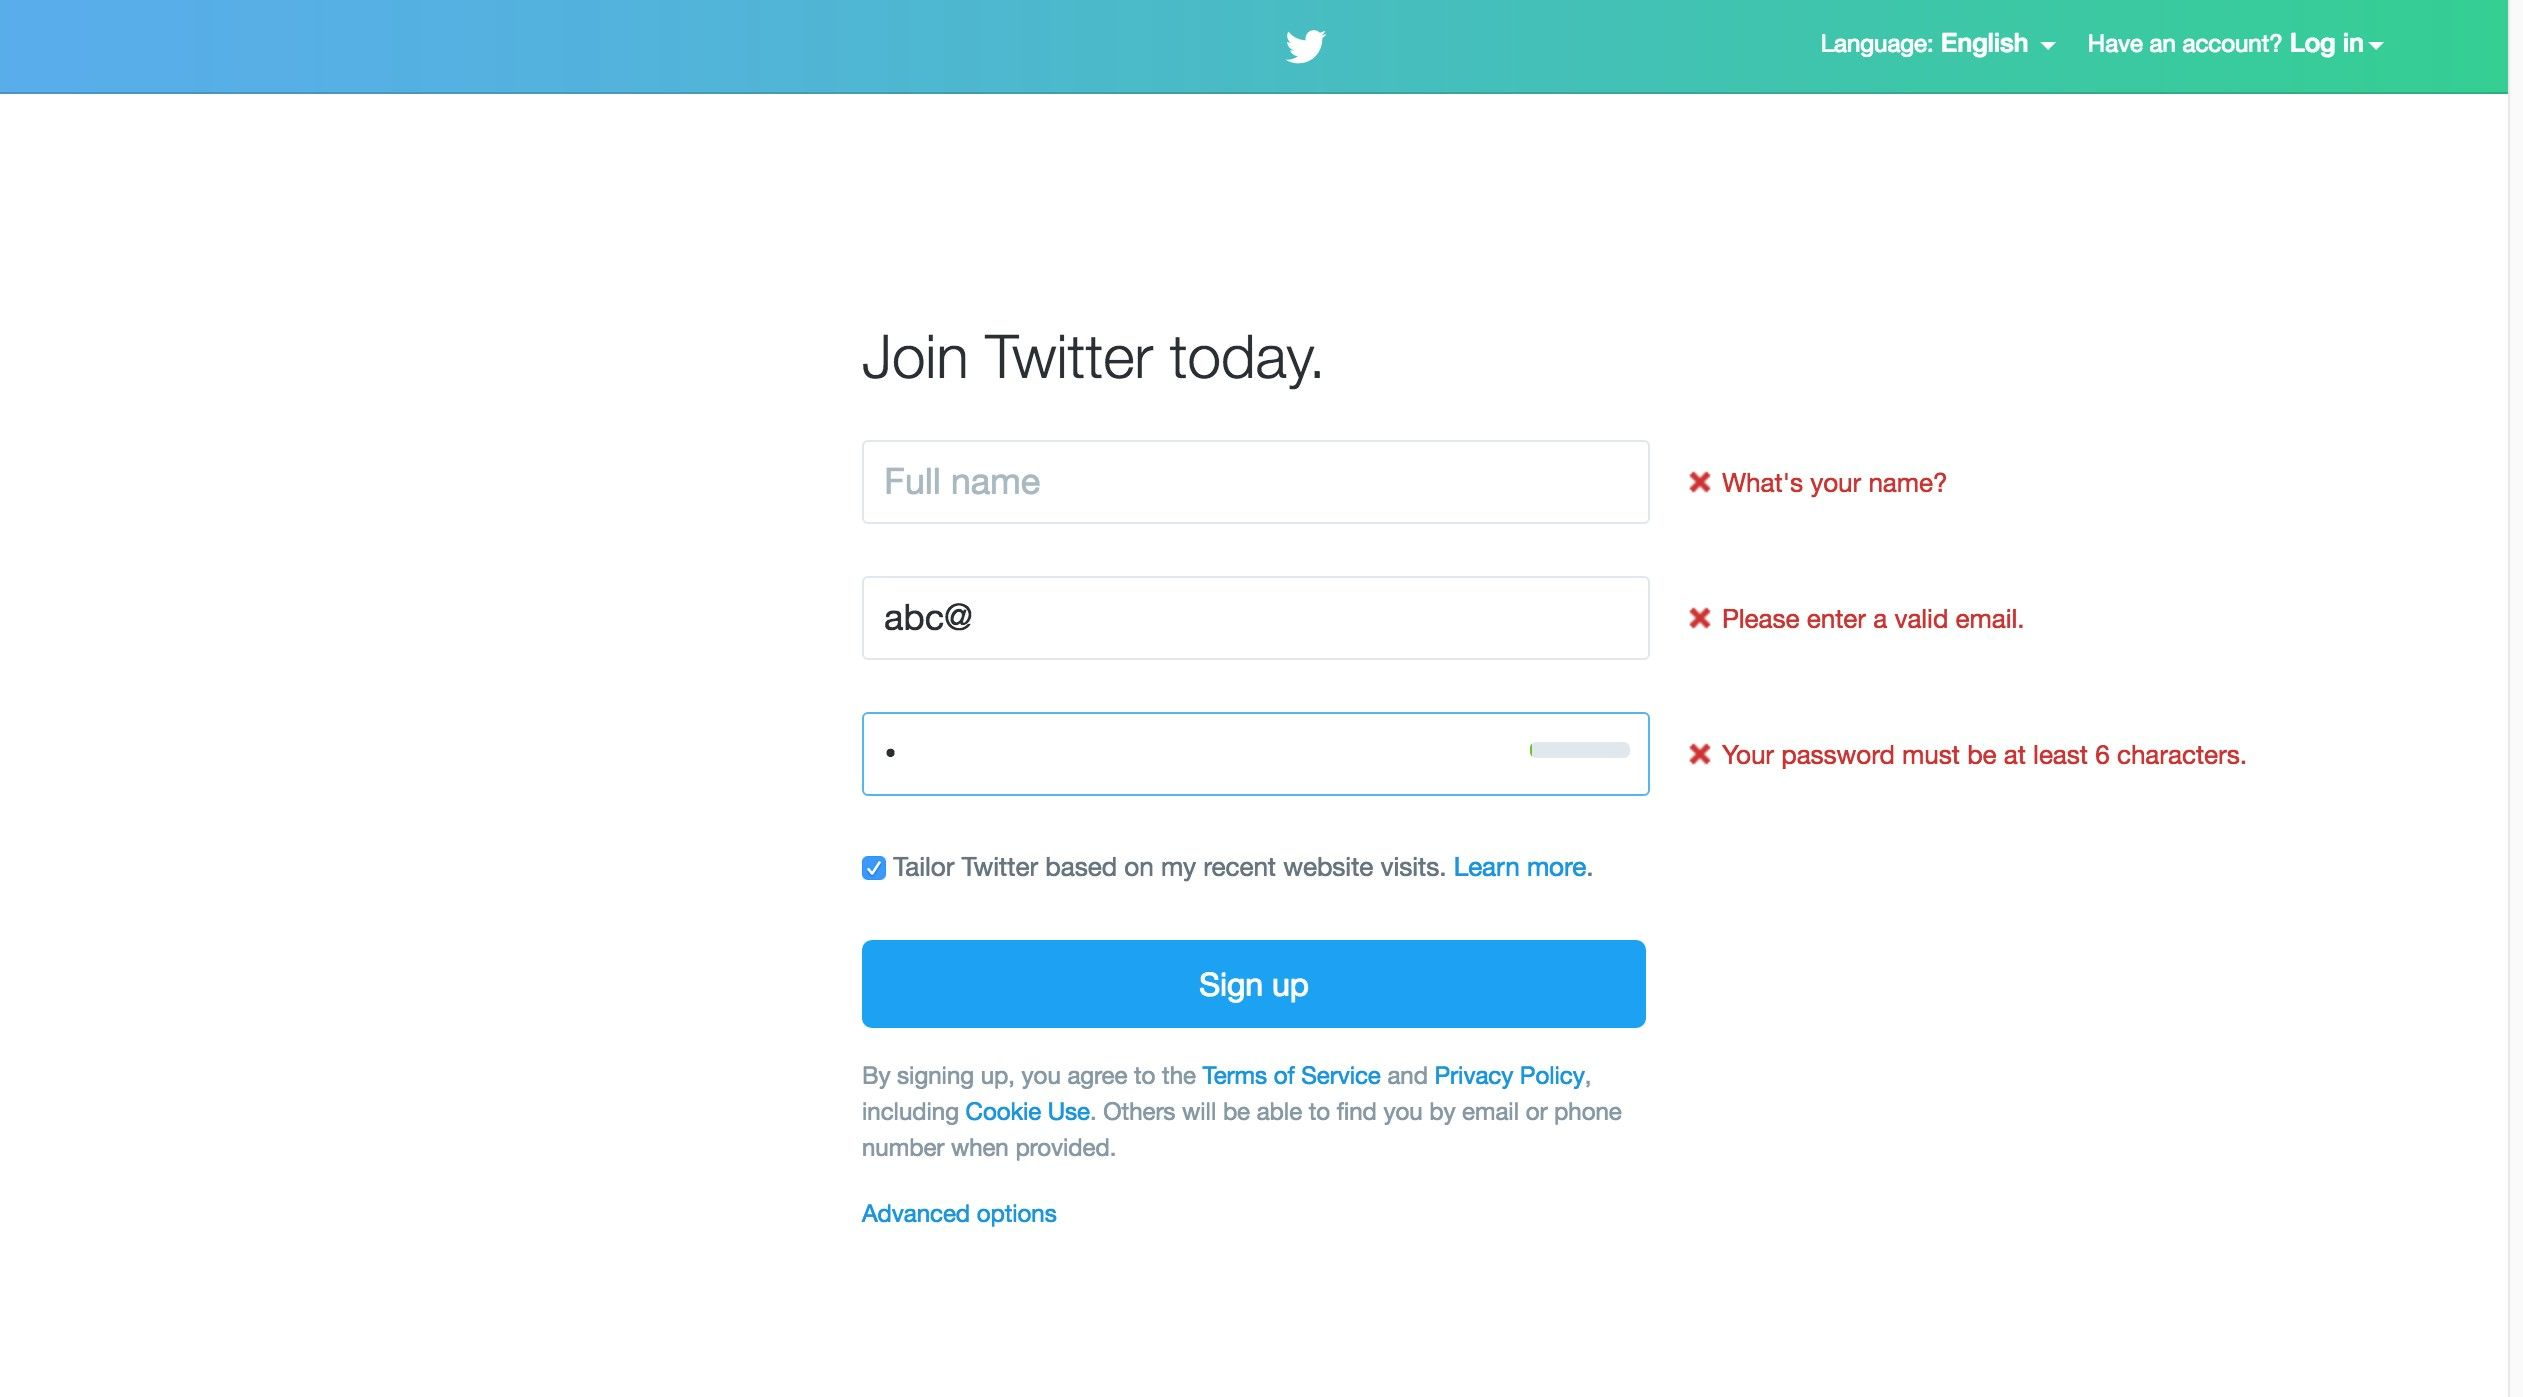 The interface of Twitter's login screen that shows error messages beside the form fields.